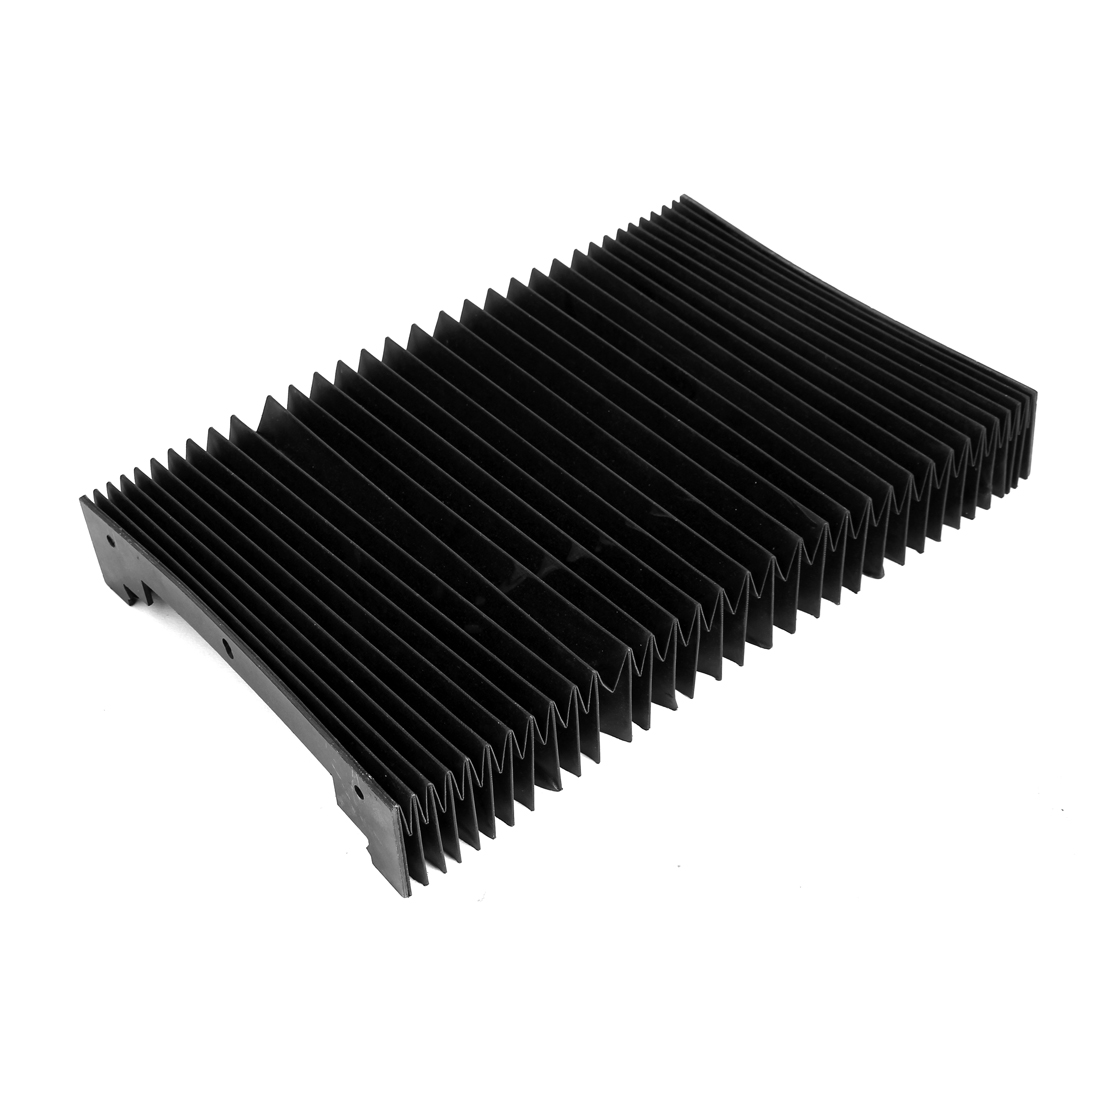 1000mmx225mmx50mm Machine Fitting Foldable Dust Protective Cover Black